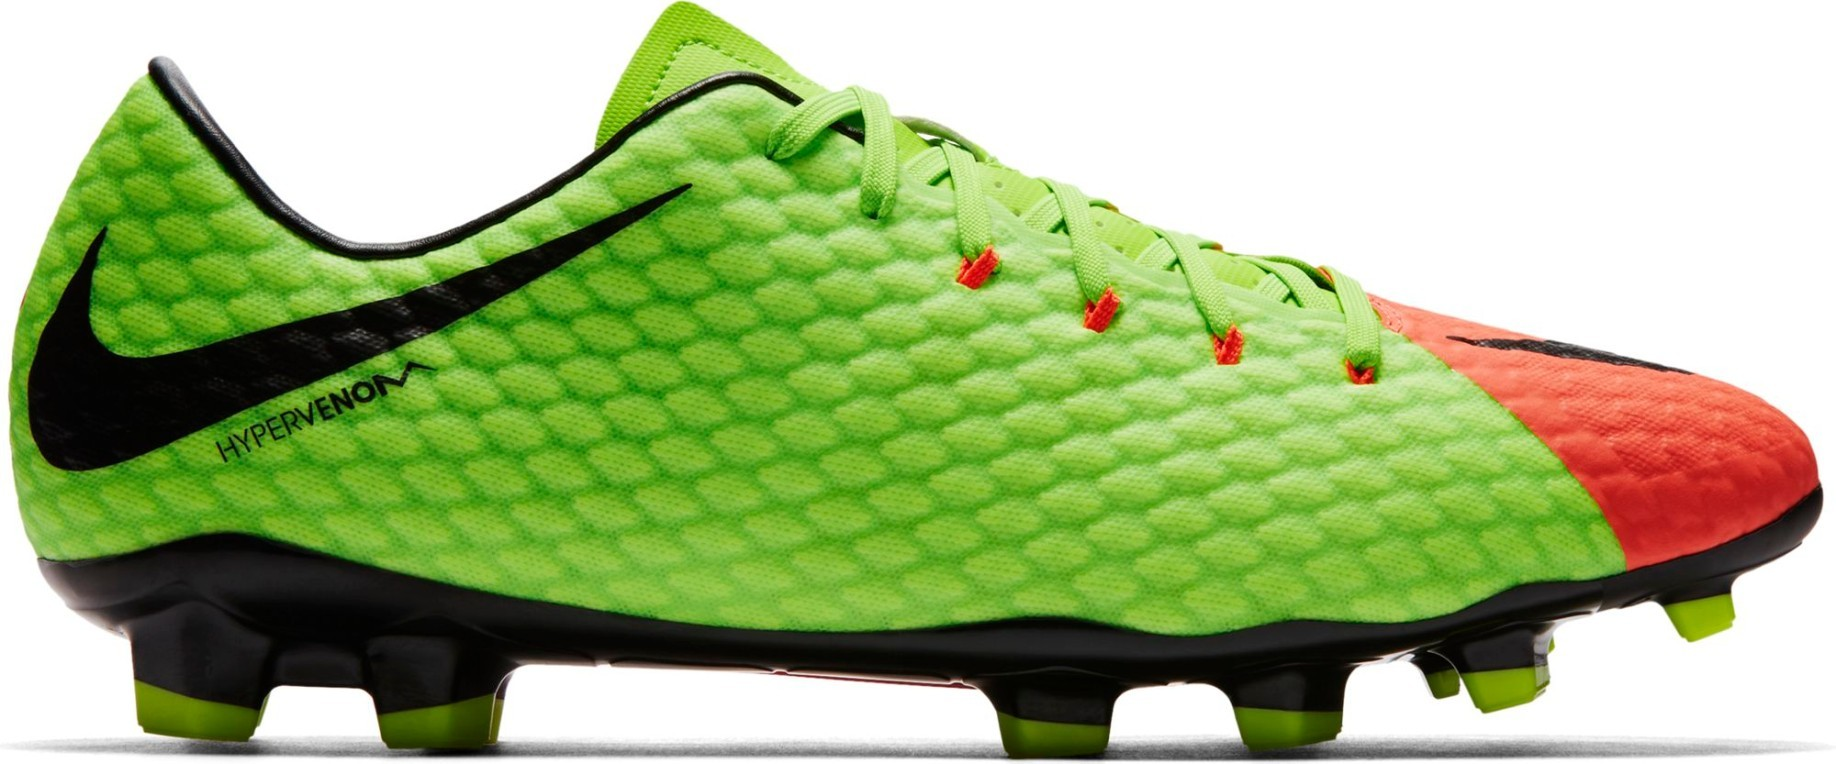 cheap for discount d85db 2af33 Soccer shoes Nike Hypervenom Phelon III FG Radiation Flare Pack